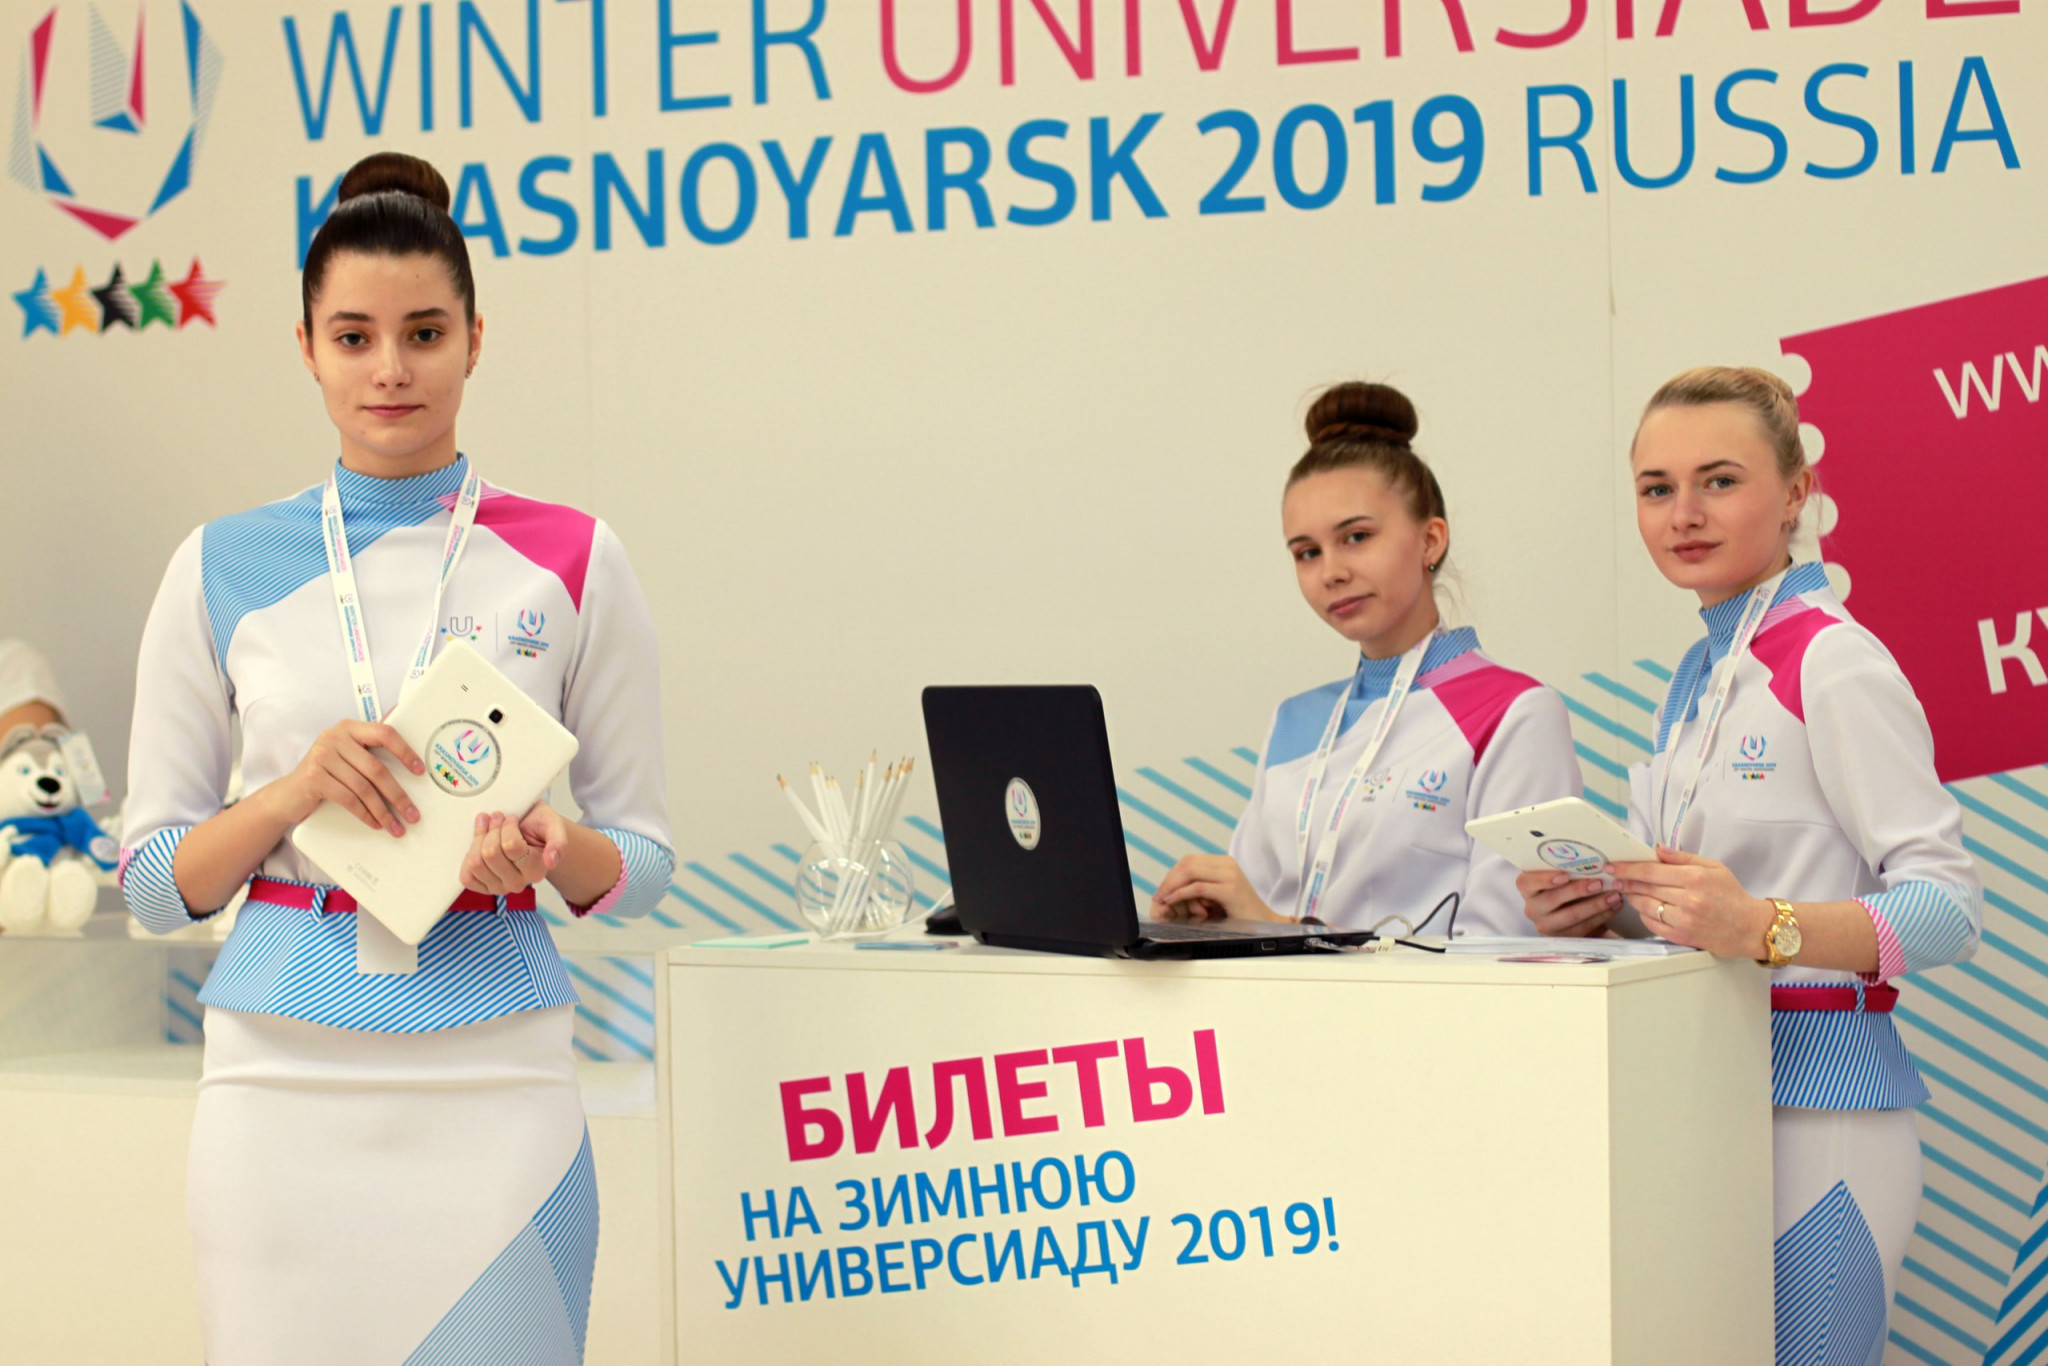 Tickets for Krasnoyarsk 2019 can be purchased in a number of different ways in Russia and the rest of the world ©Krasnoyarsk 2019